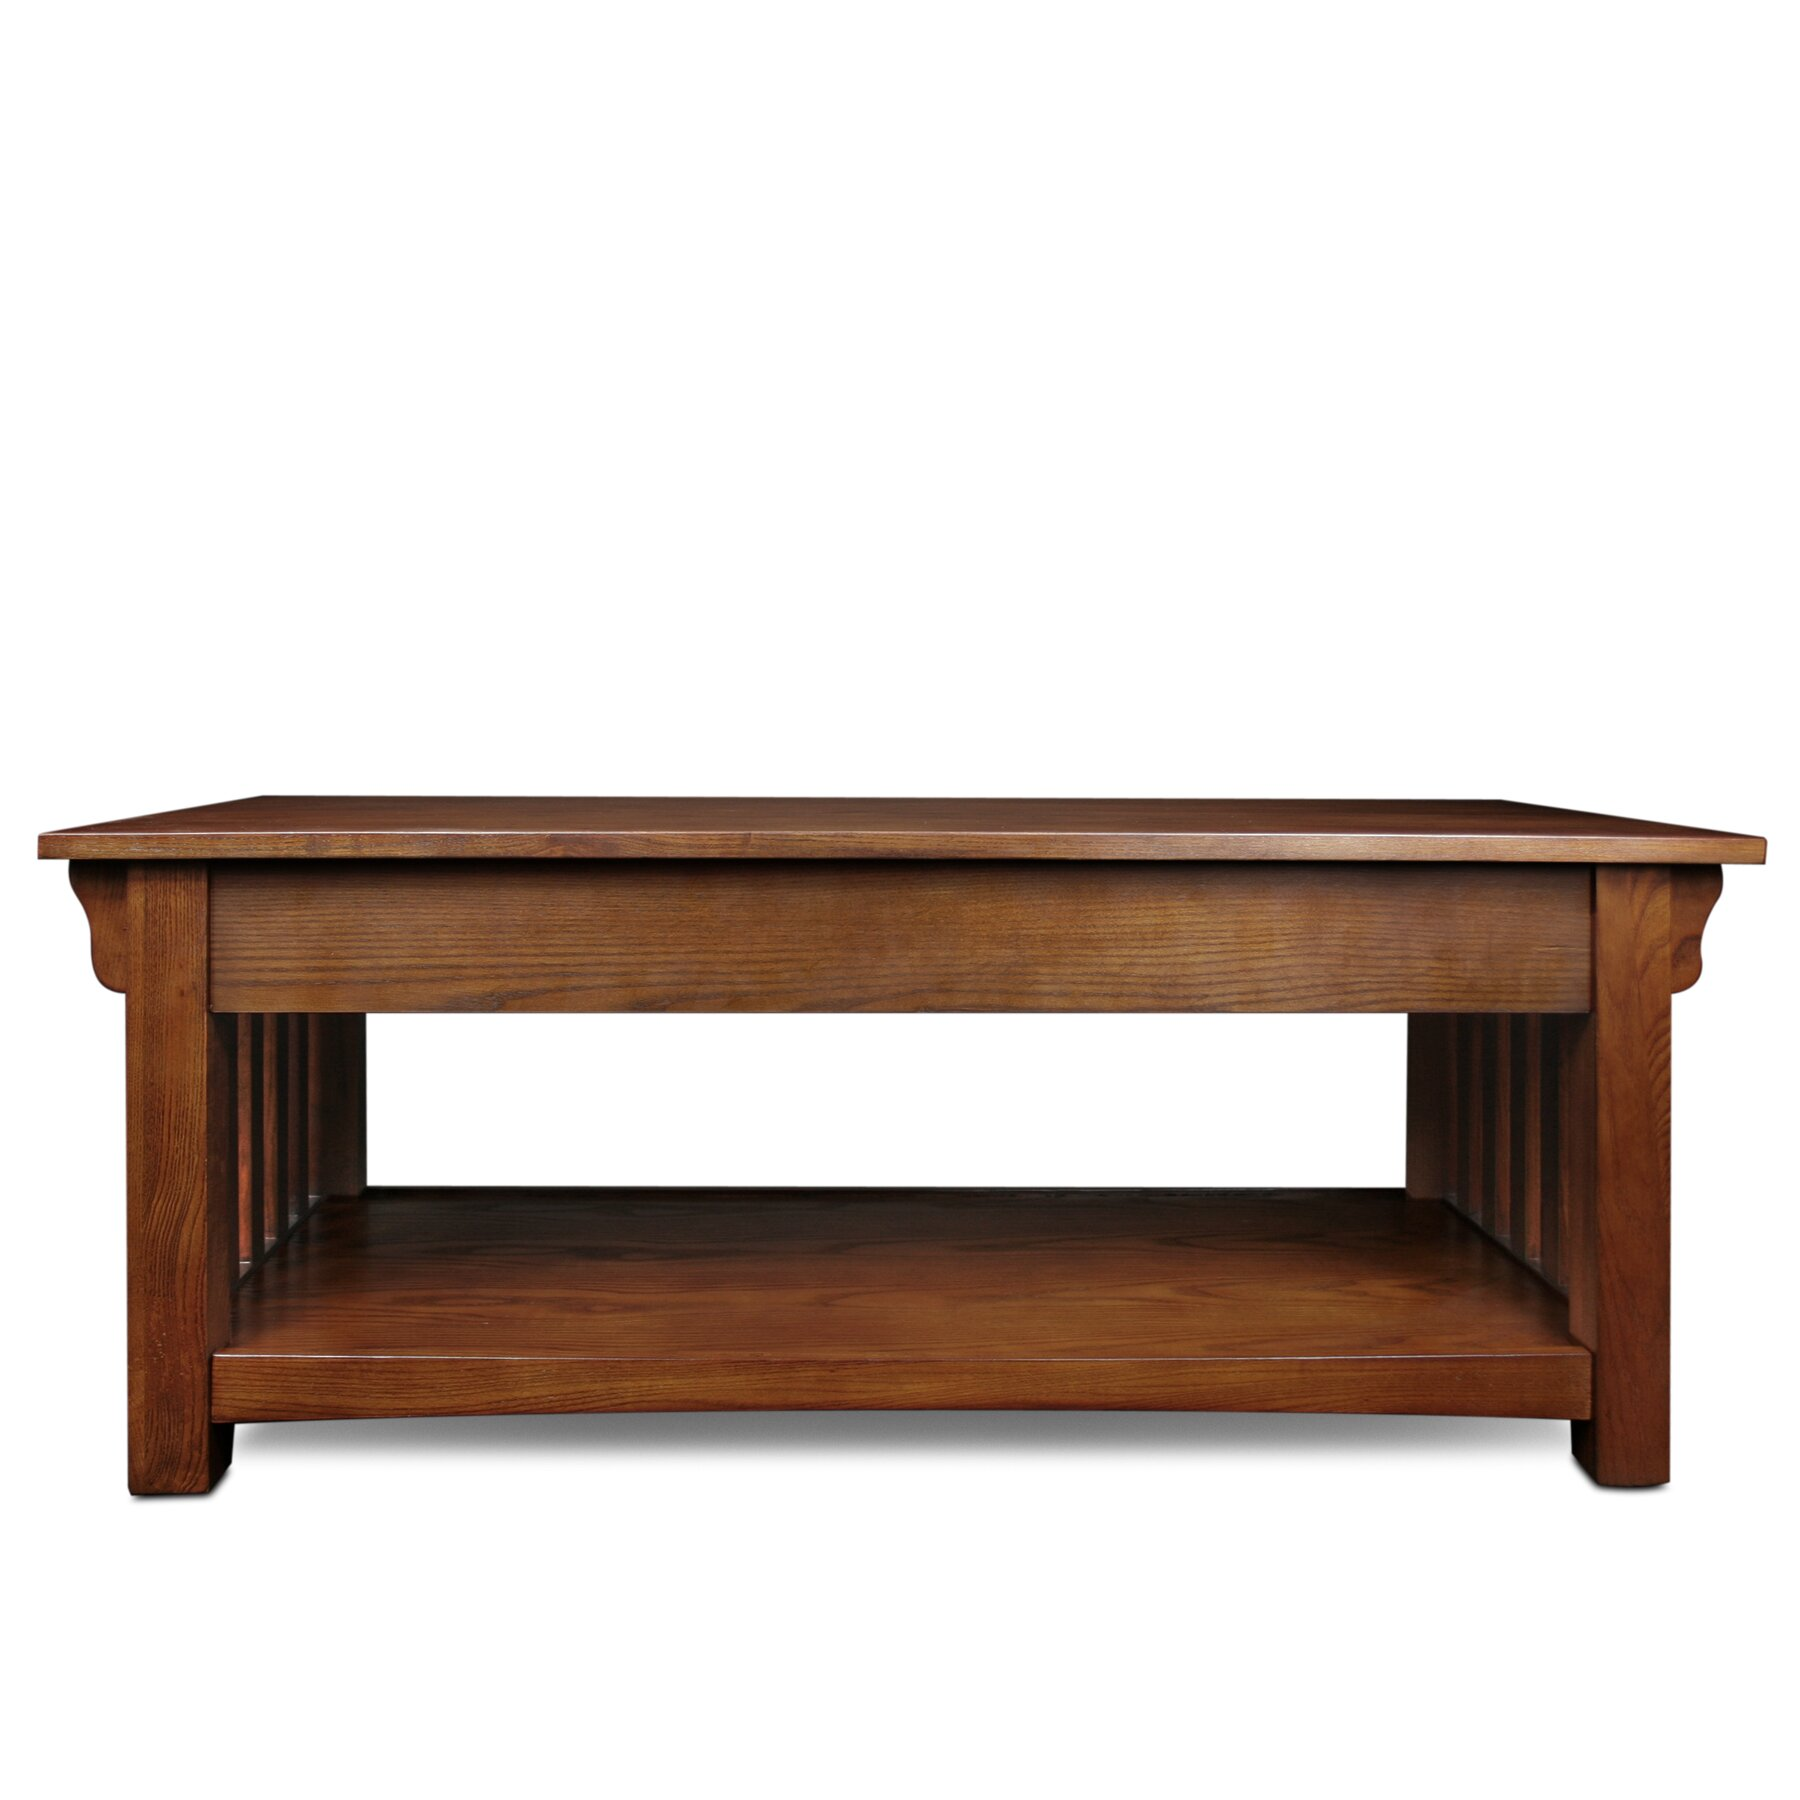 Leick mission impeccable coffee table reviews wayfair for Mission furniture